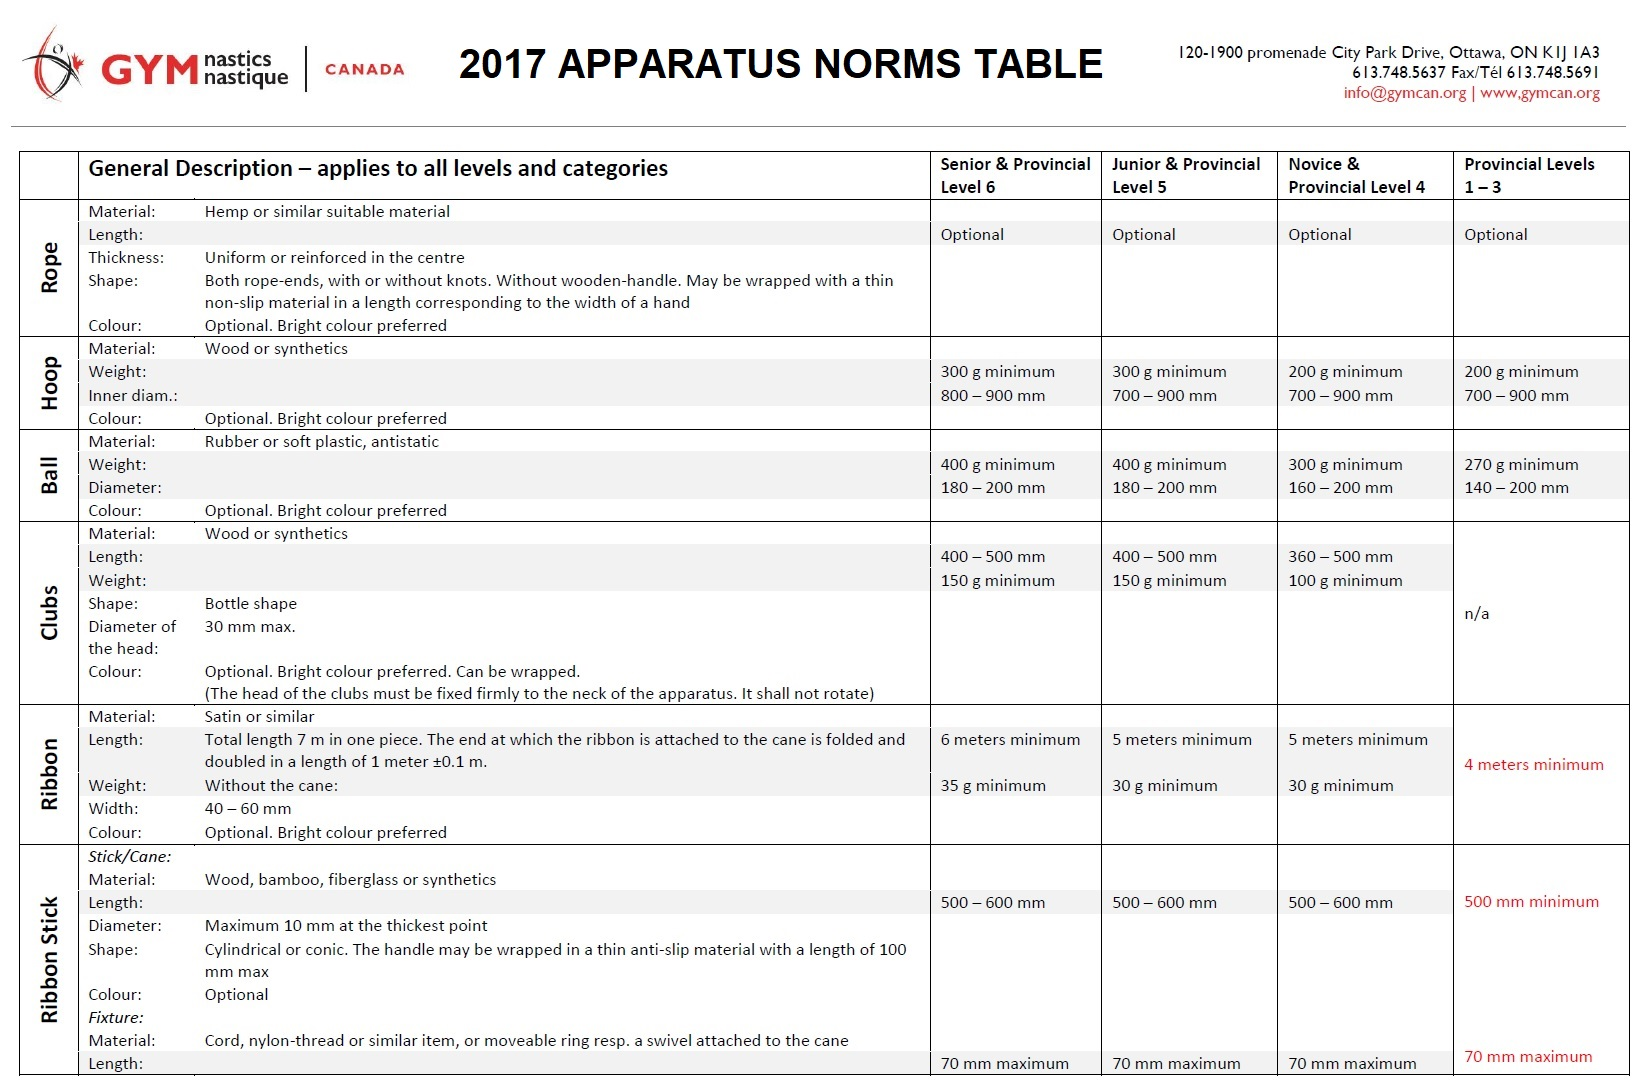 GCG_Apparatus Norms Table_2017_1